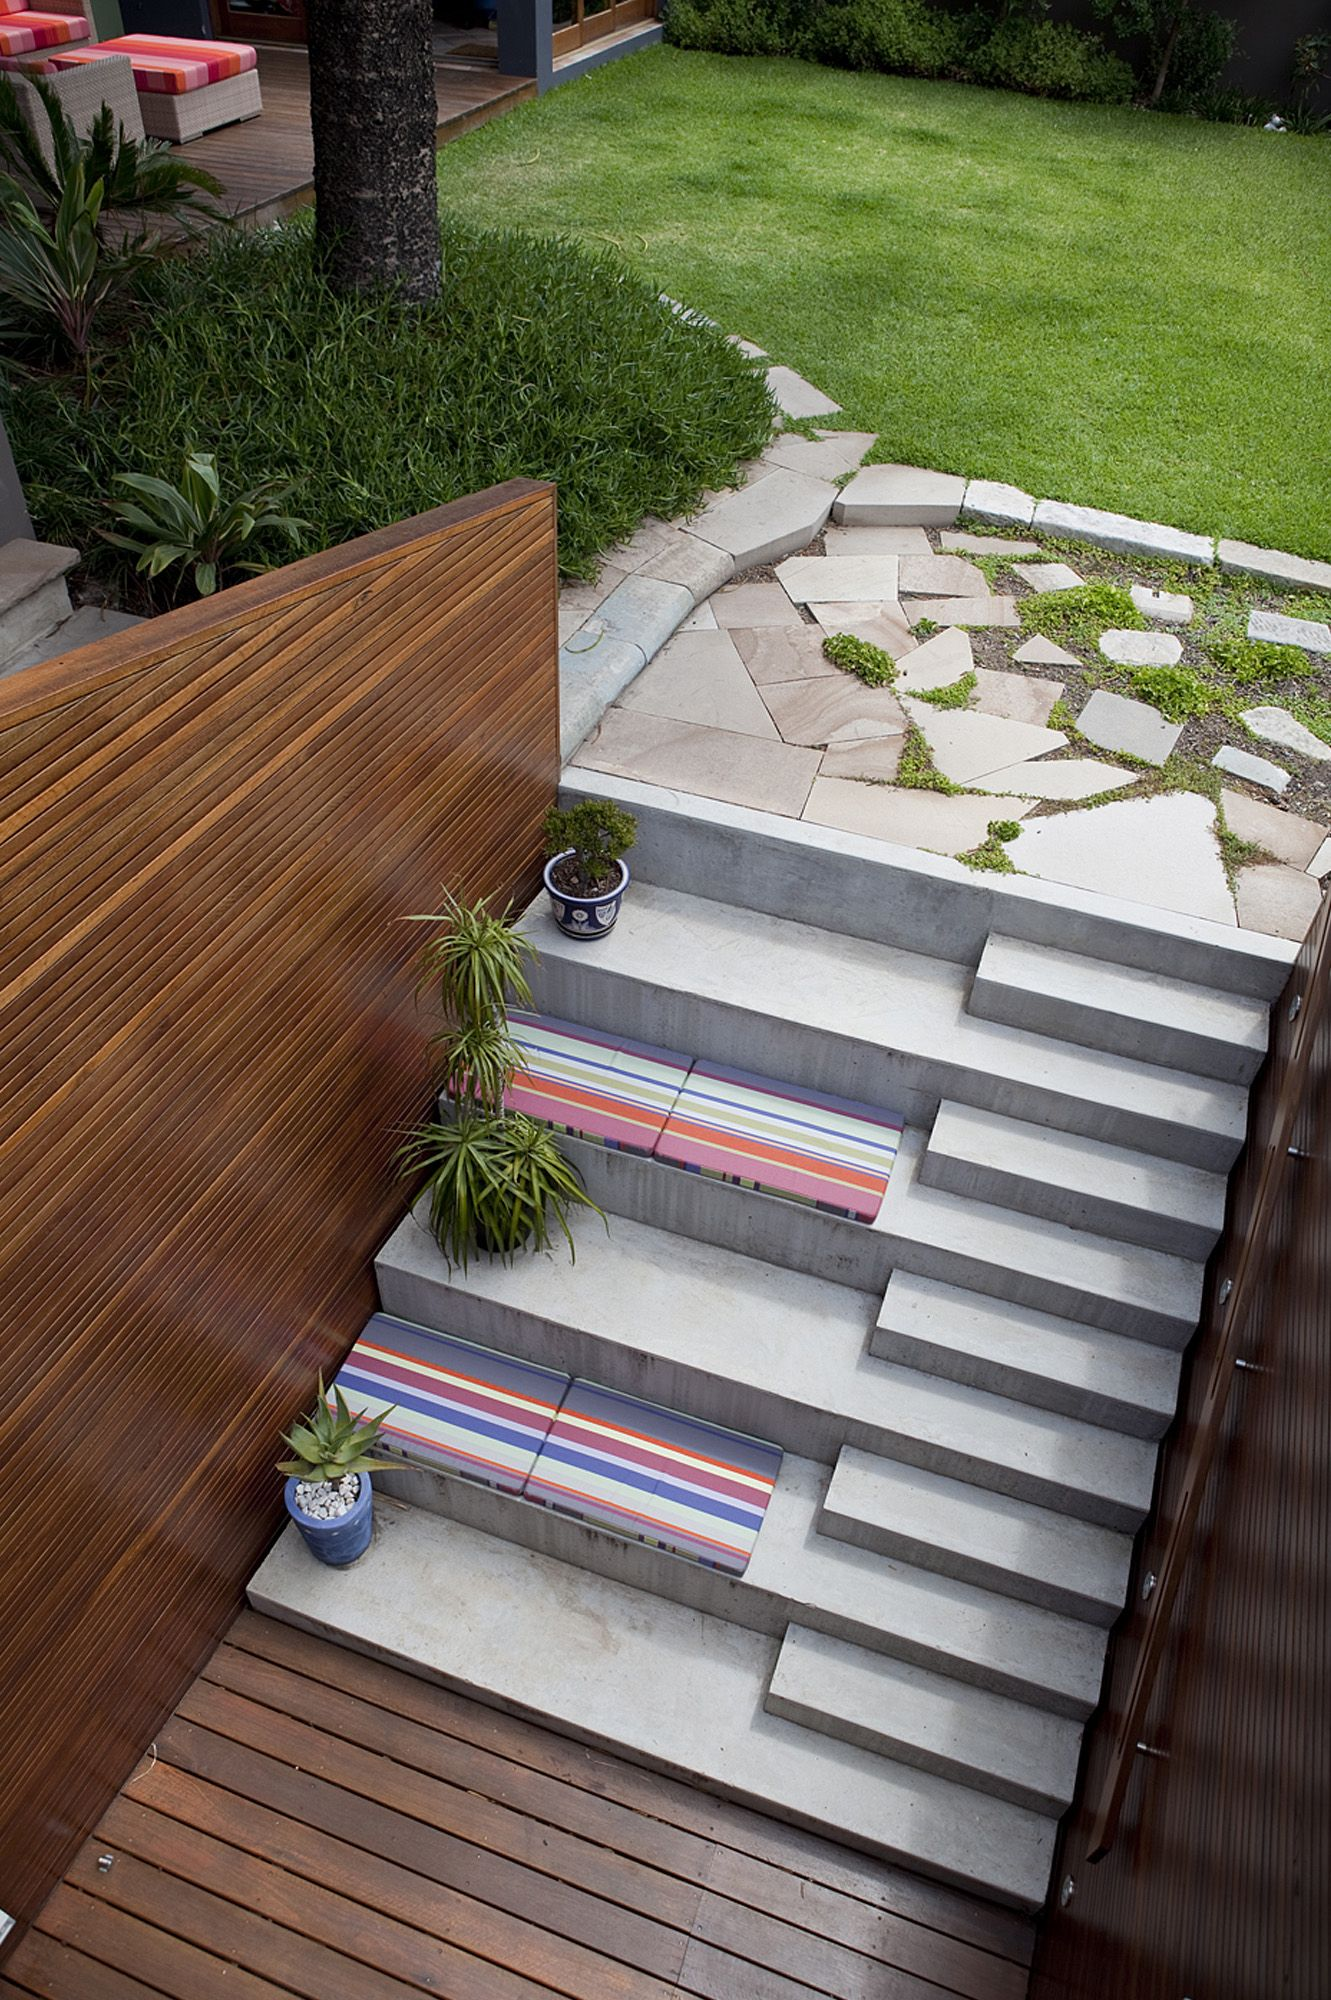 Patio stairs benches opposite an outdoor movie screen would be